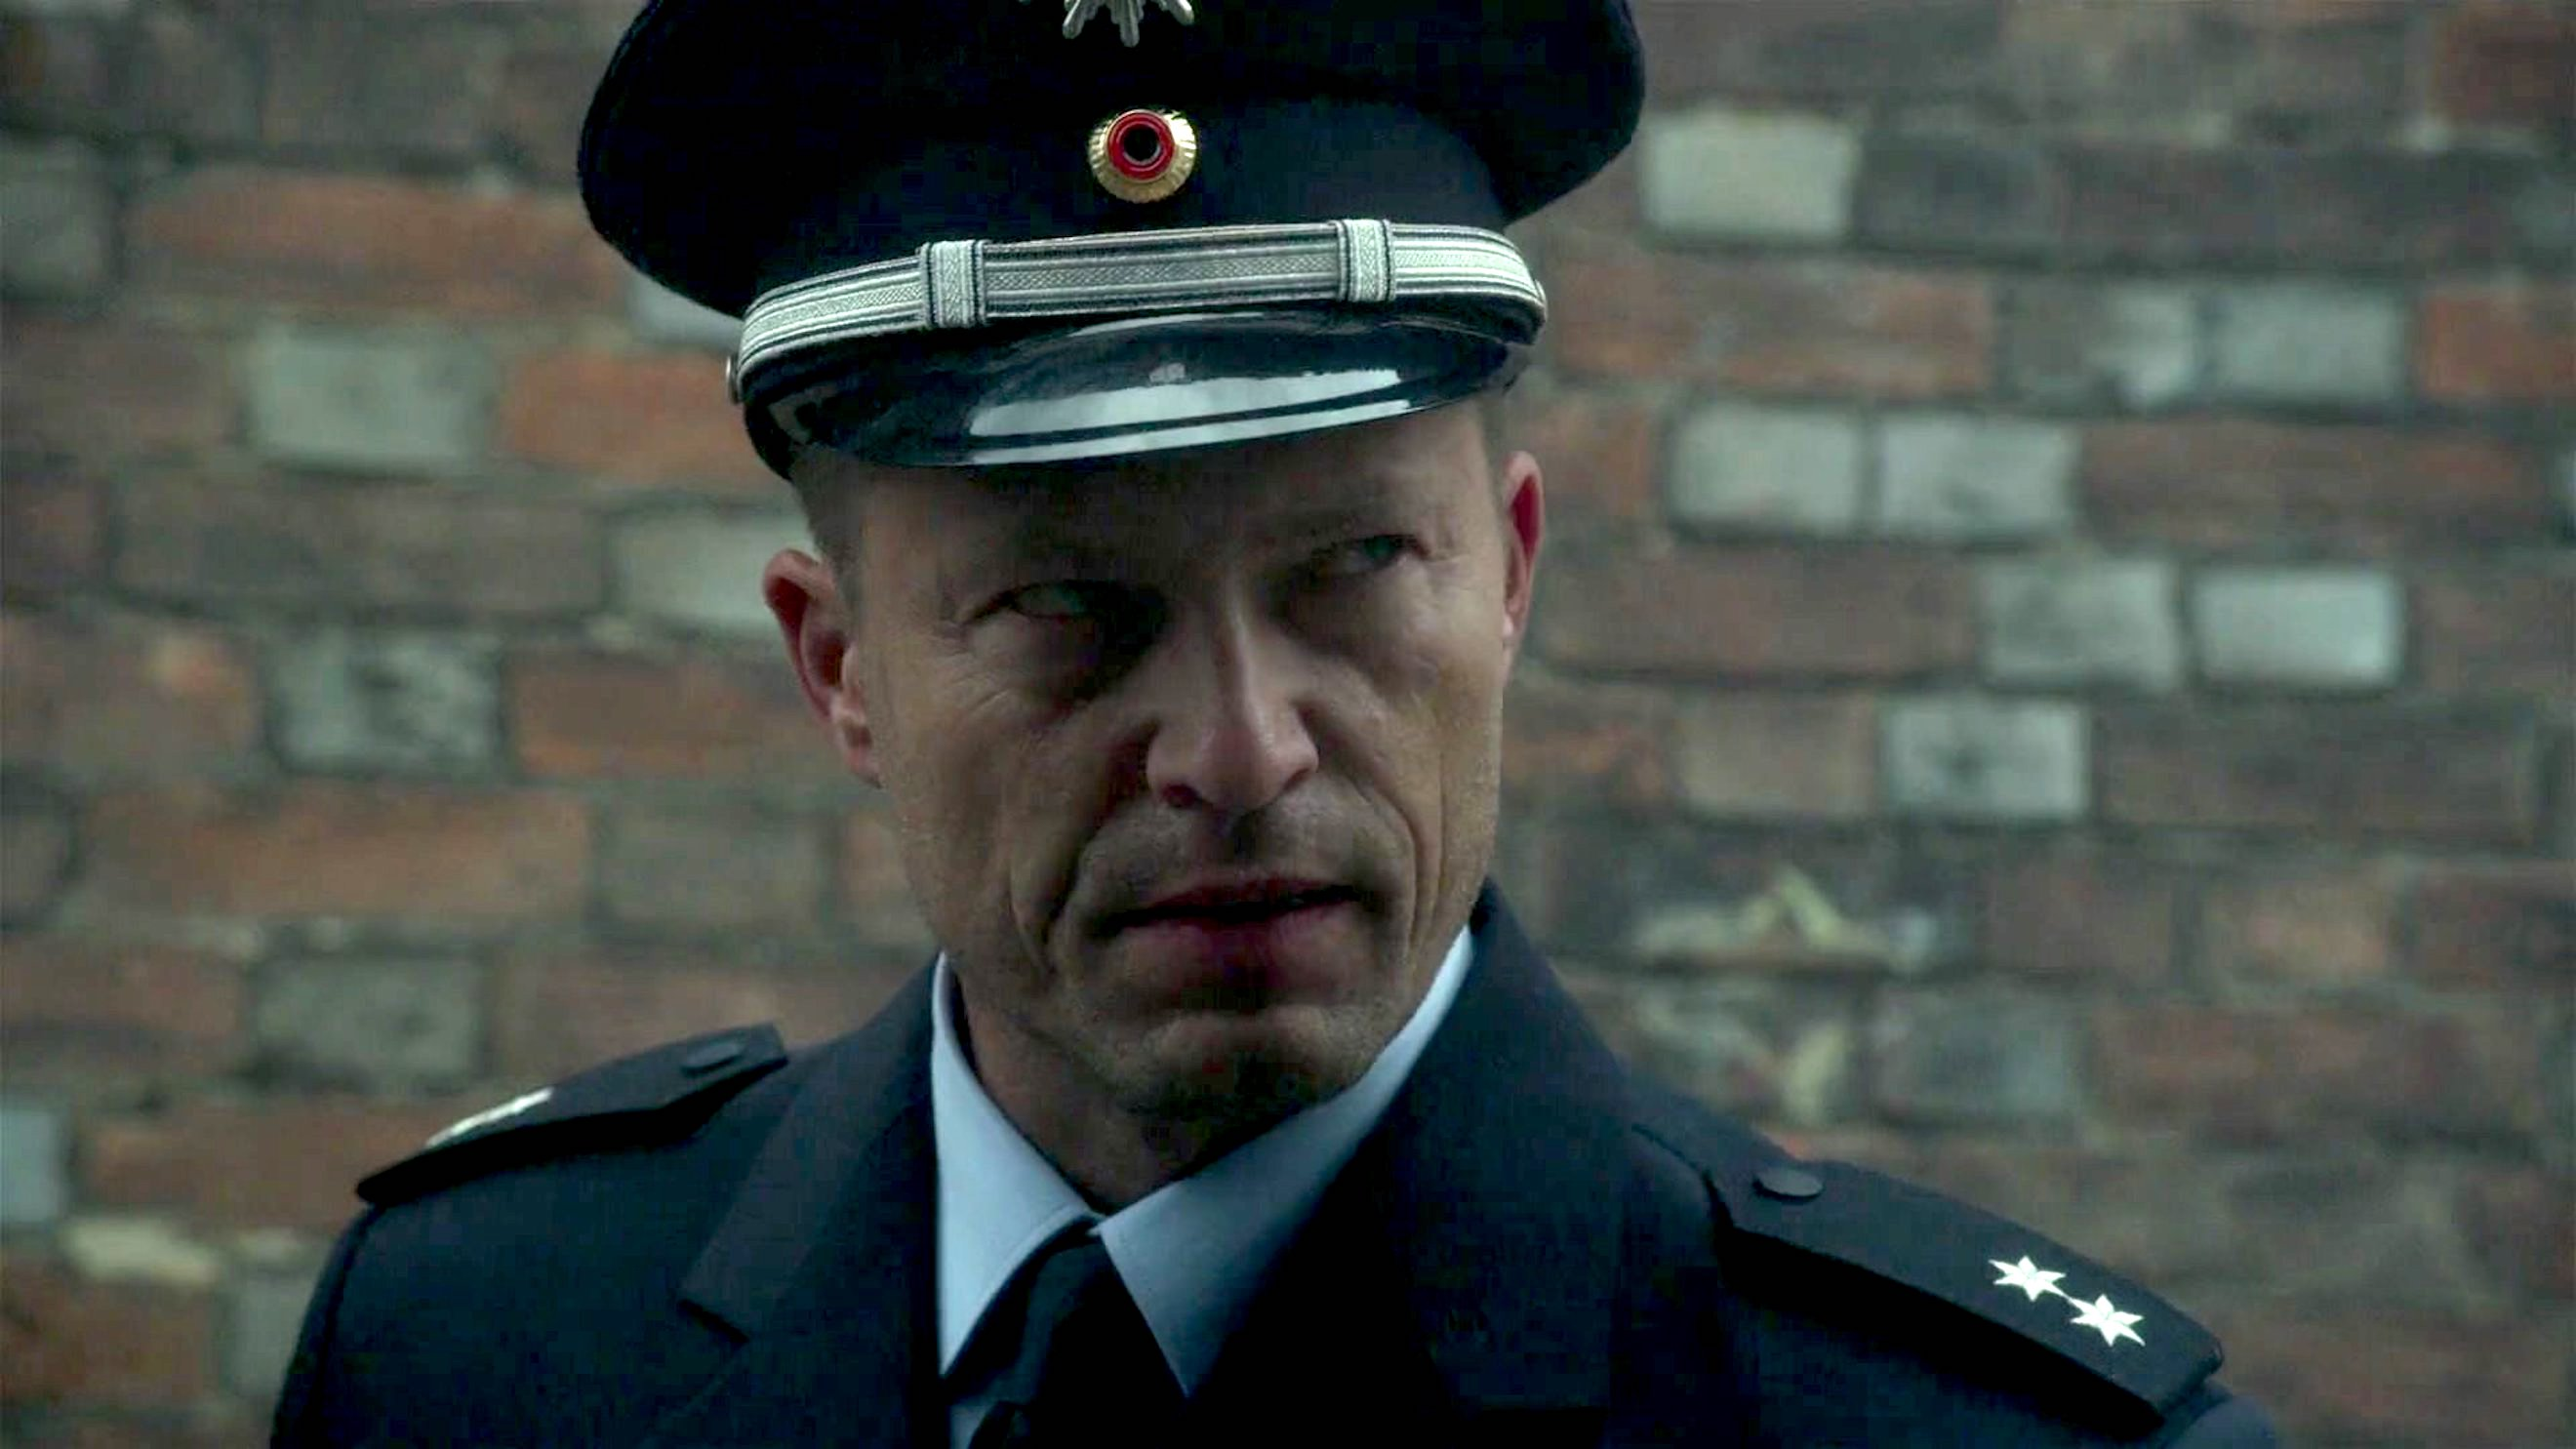 Til Schweiger in Muppets Most Wanted (2014)